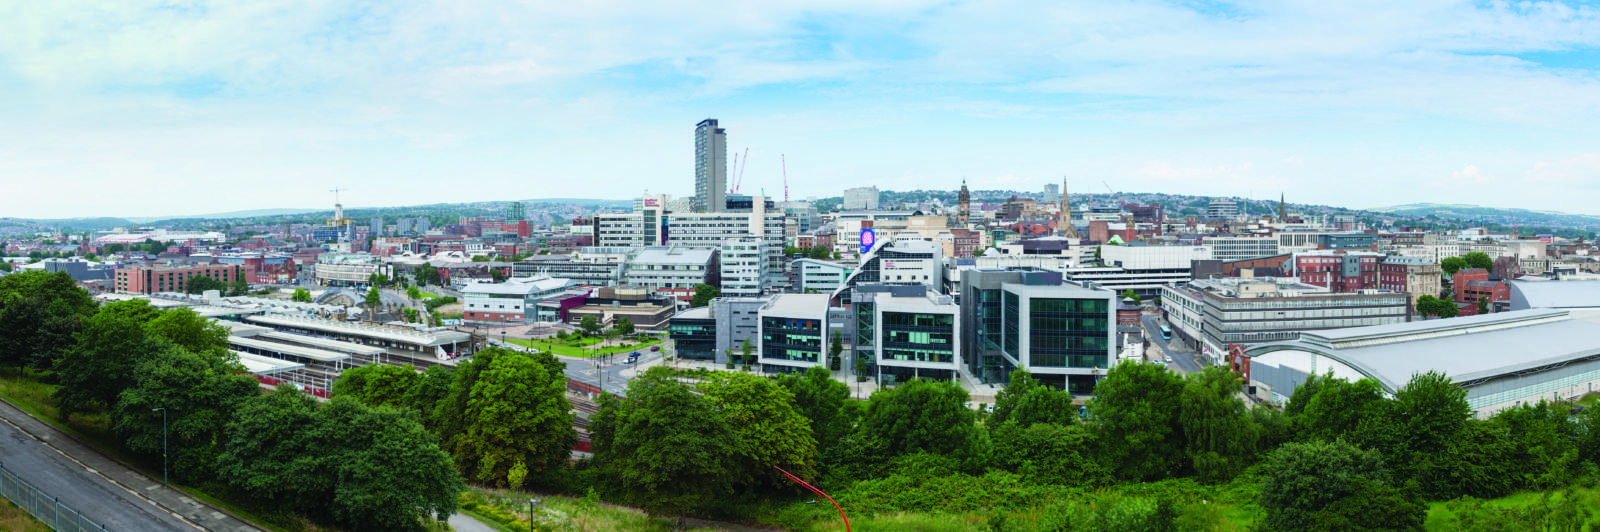 Focus on: Sheffield's Corporate Events and Conference Scene